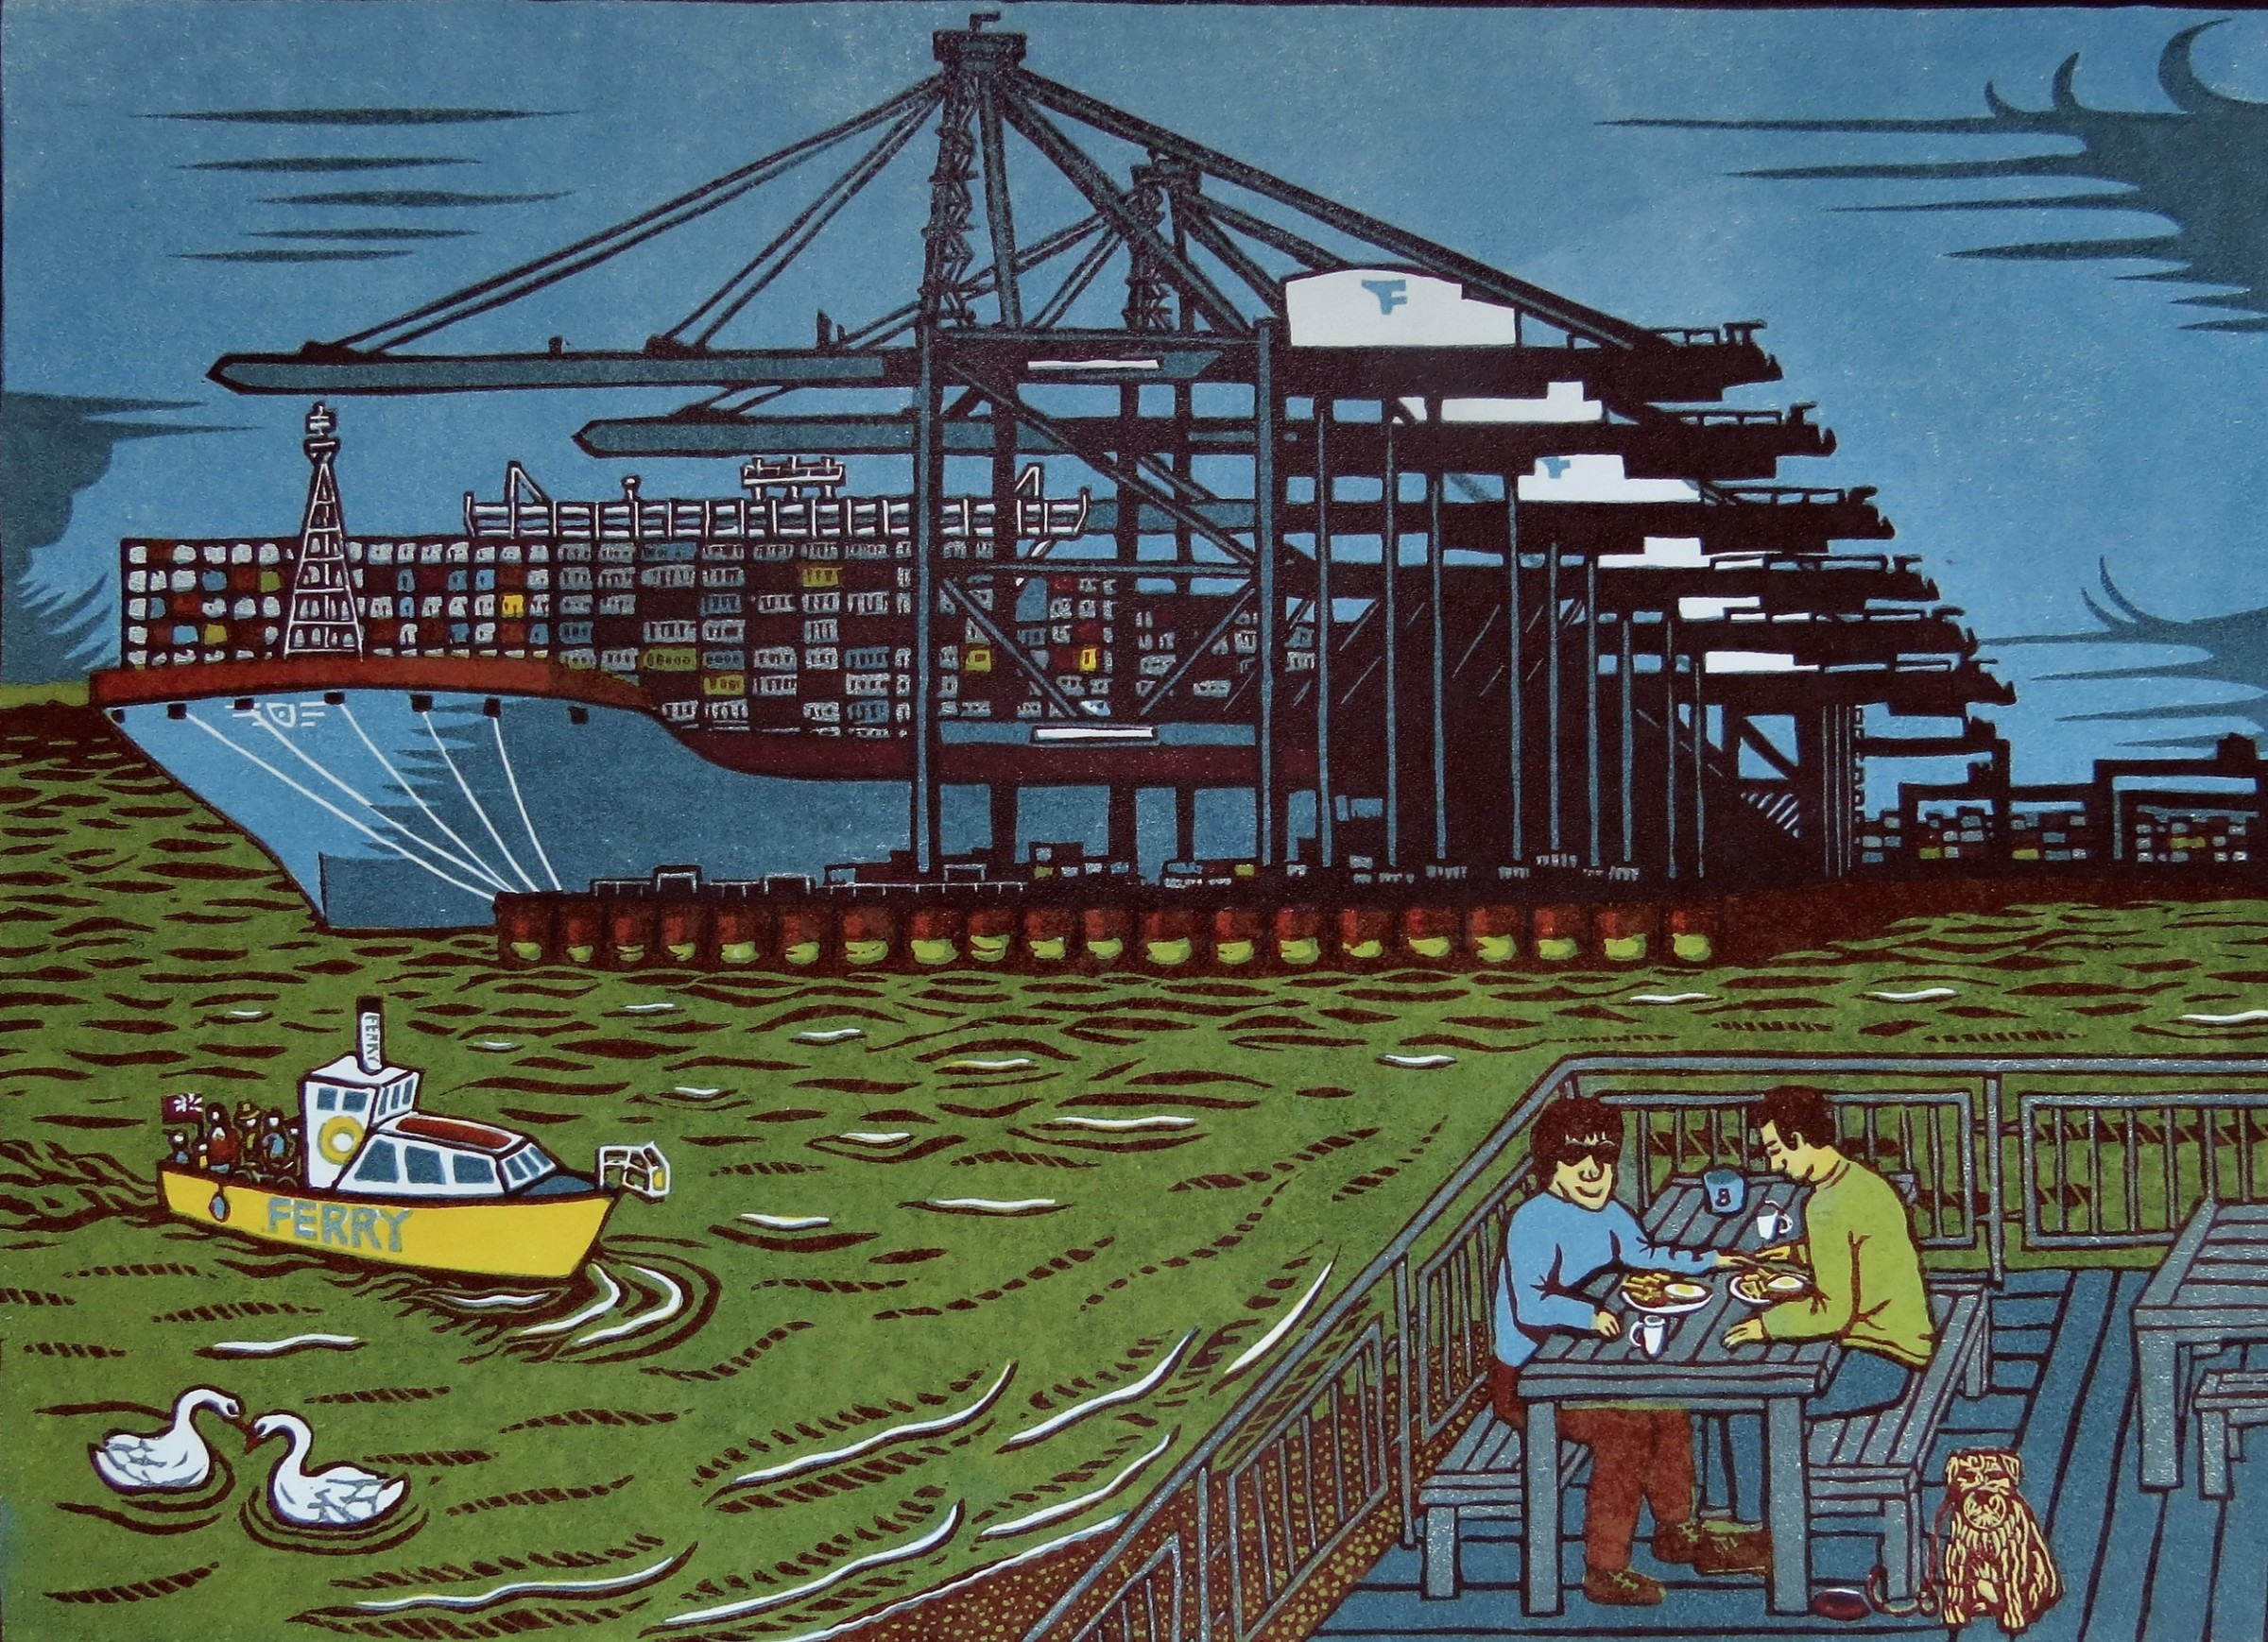 "<span class=""link fancybox-details-link""><a href=""/exhibitions/18/works/image_standalone1081/"">View Detail Page</a></span><p>Carl Borges</p><p>Breakfast at Landguard Point, Felixstowe</p><p>linocut</p><p>56 x 44cm</p><p>£250 framed</p><p>£195 unframed</p>"